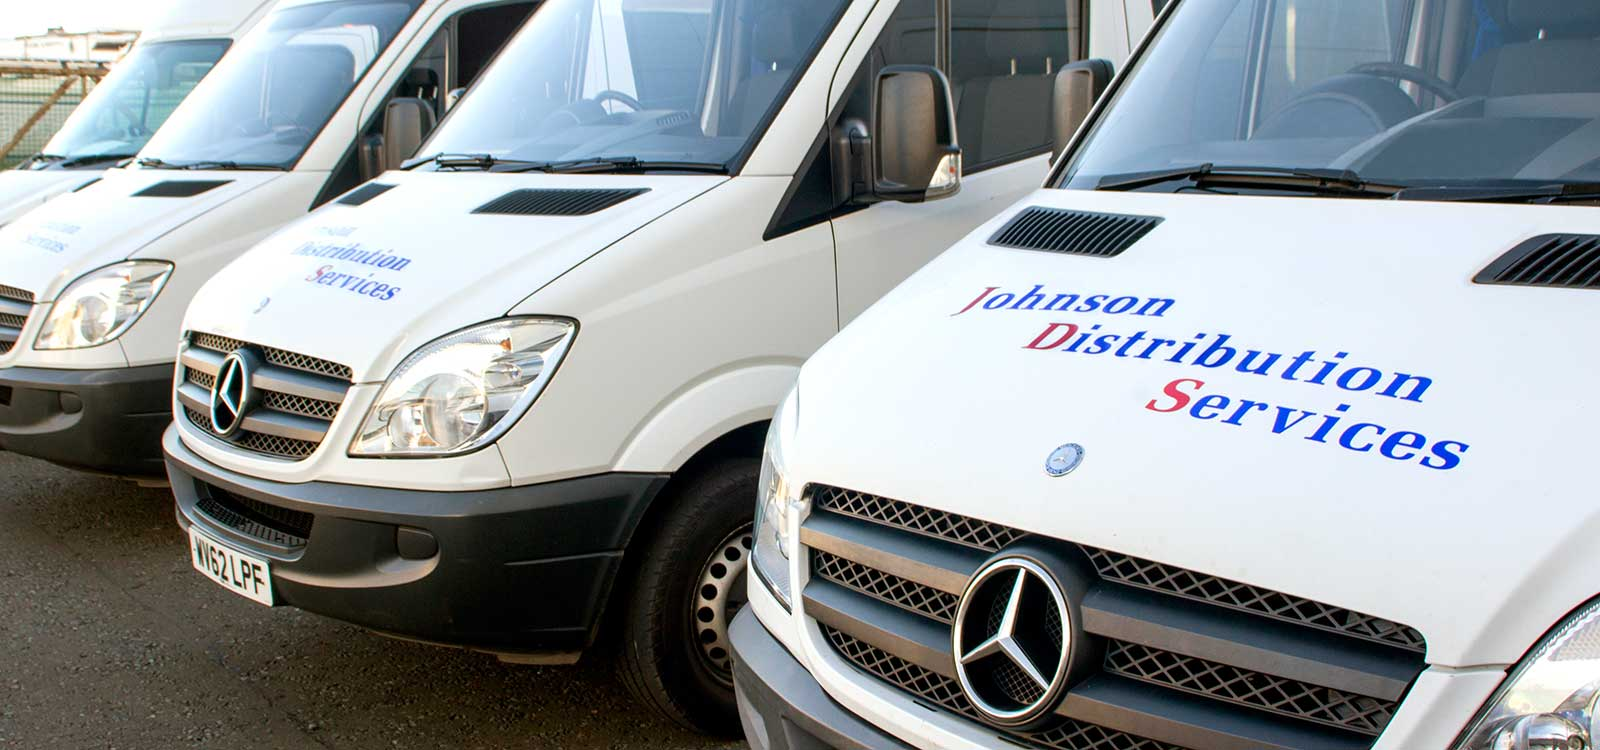 JDS Distribution Vans